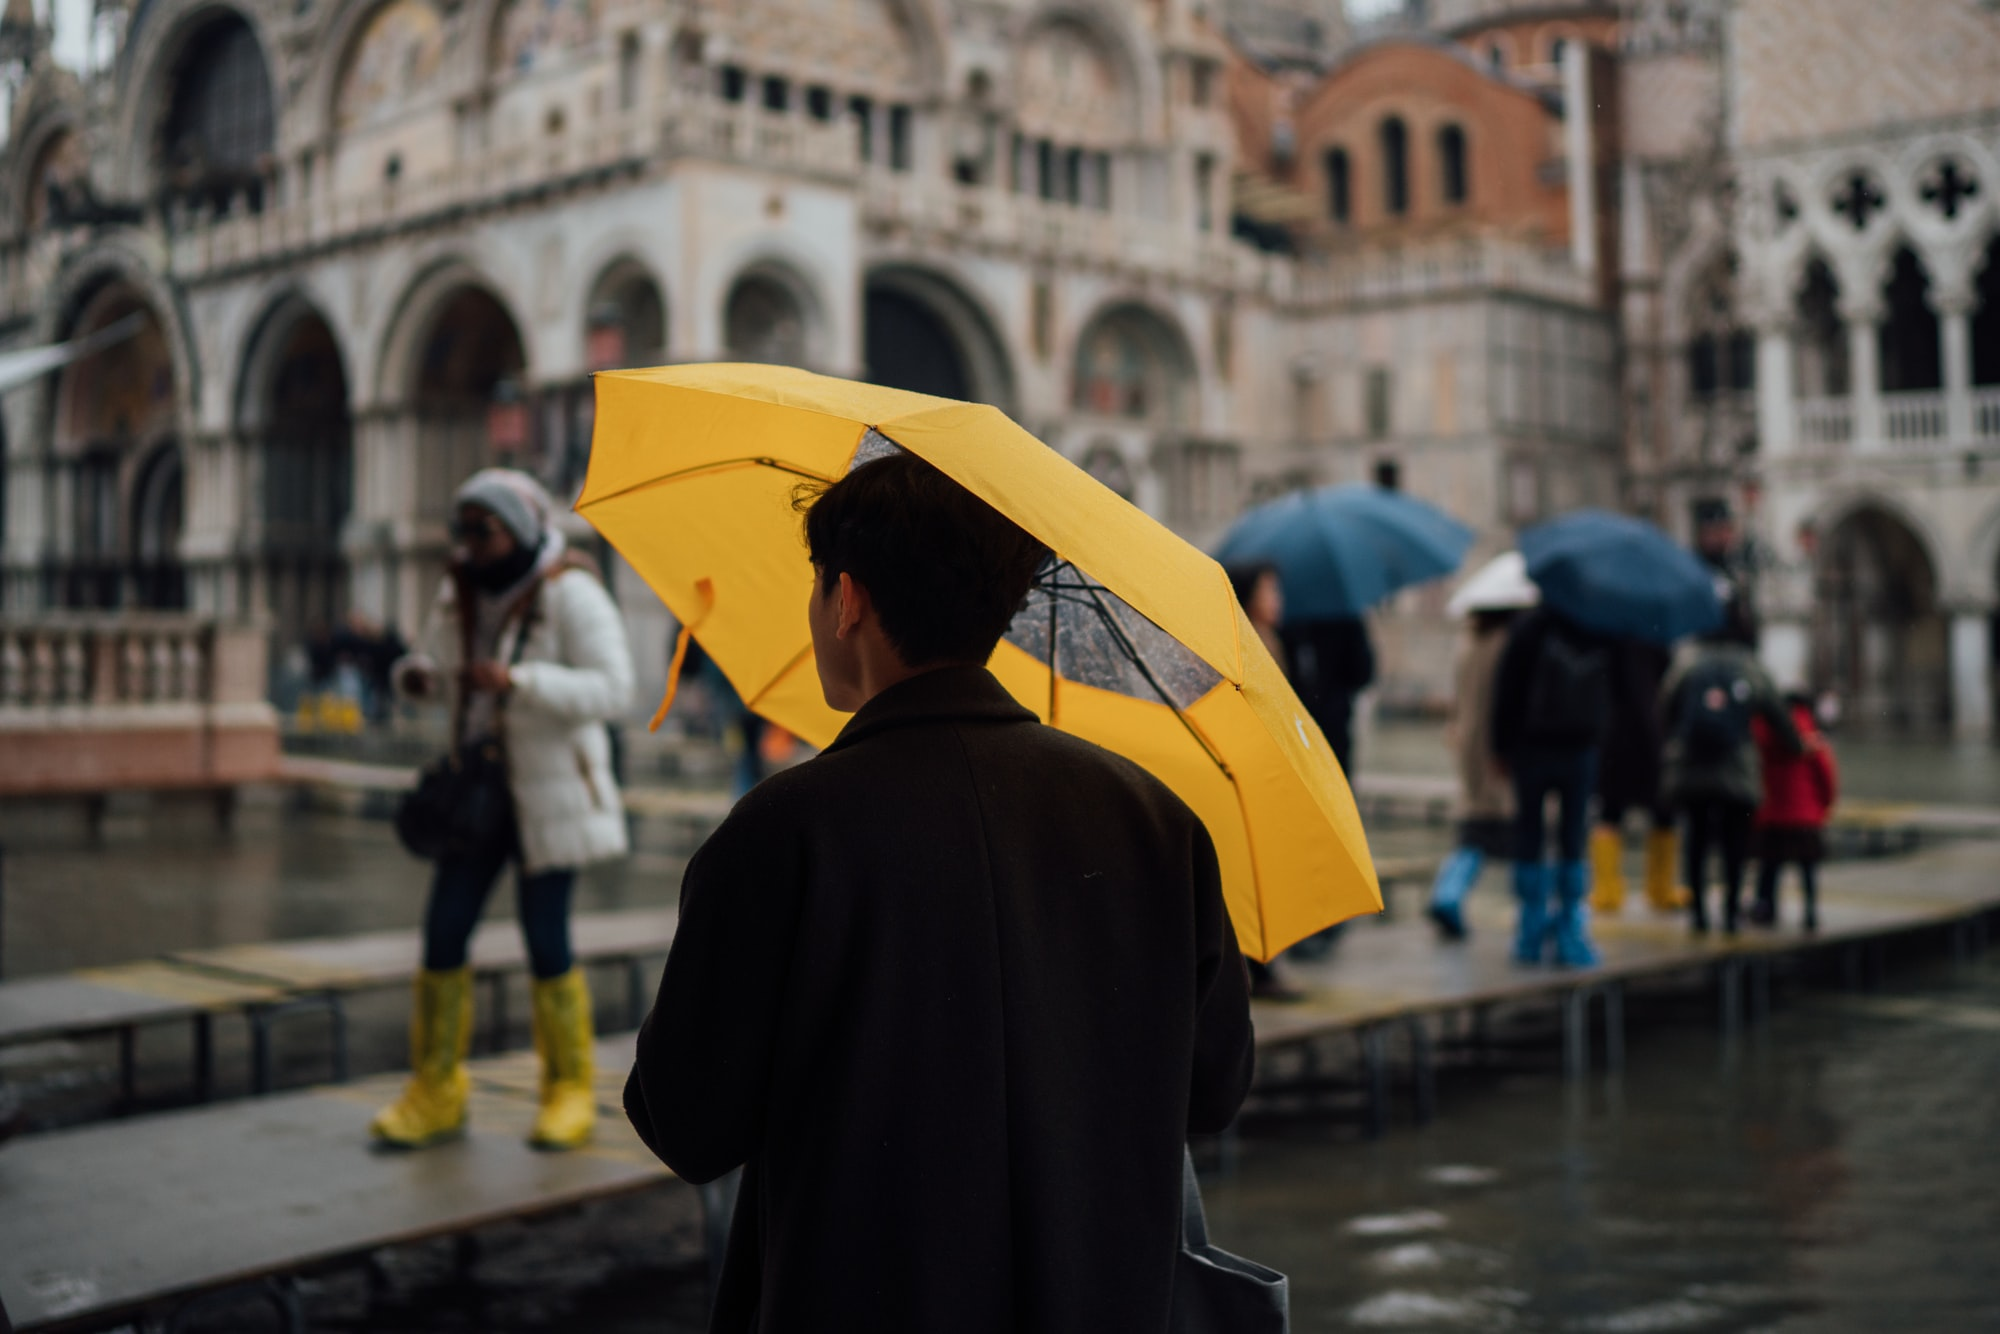 Living As A Chinese In Europe: My European Stories